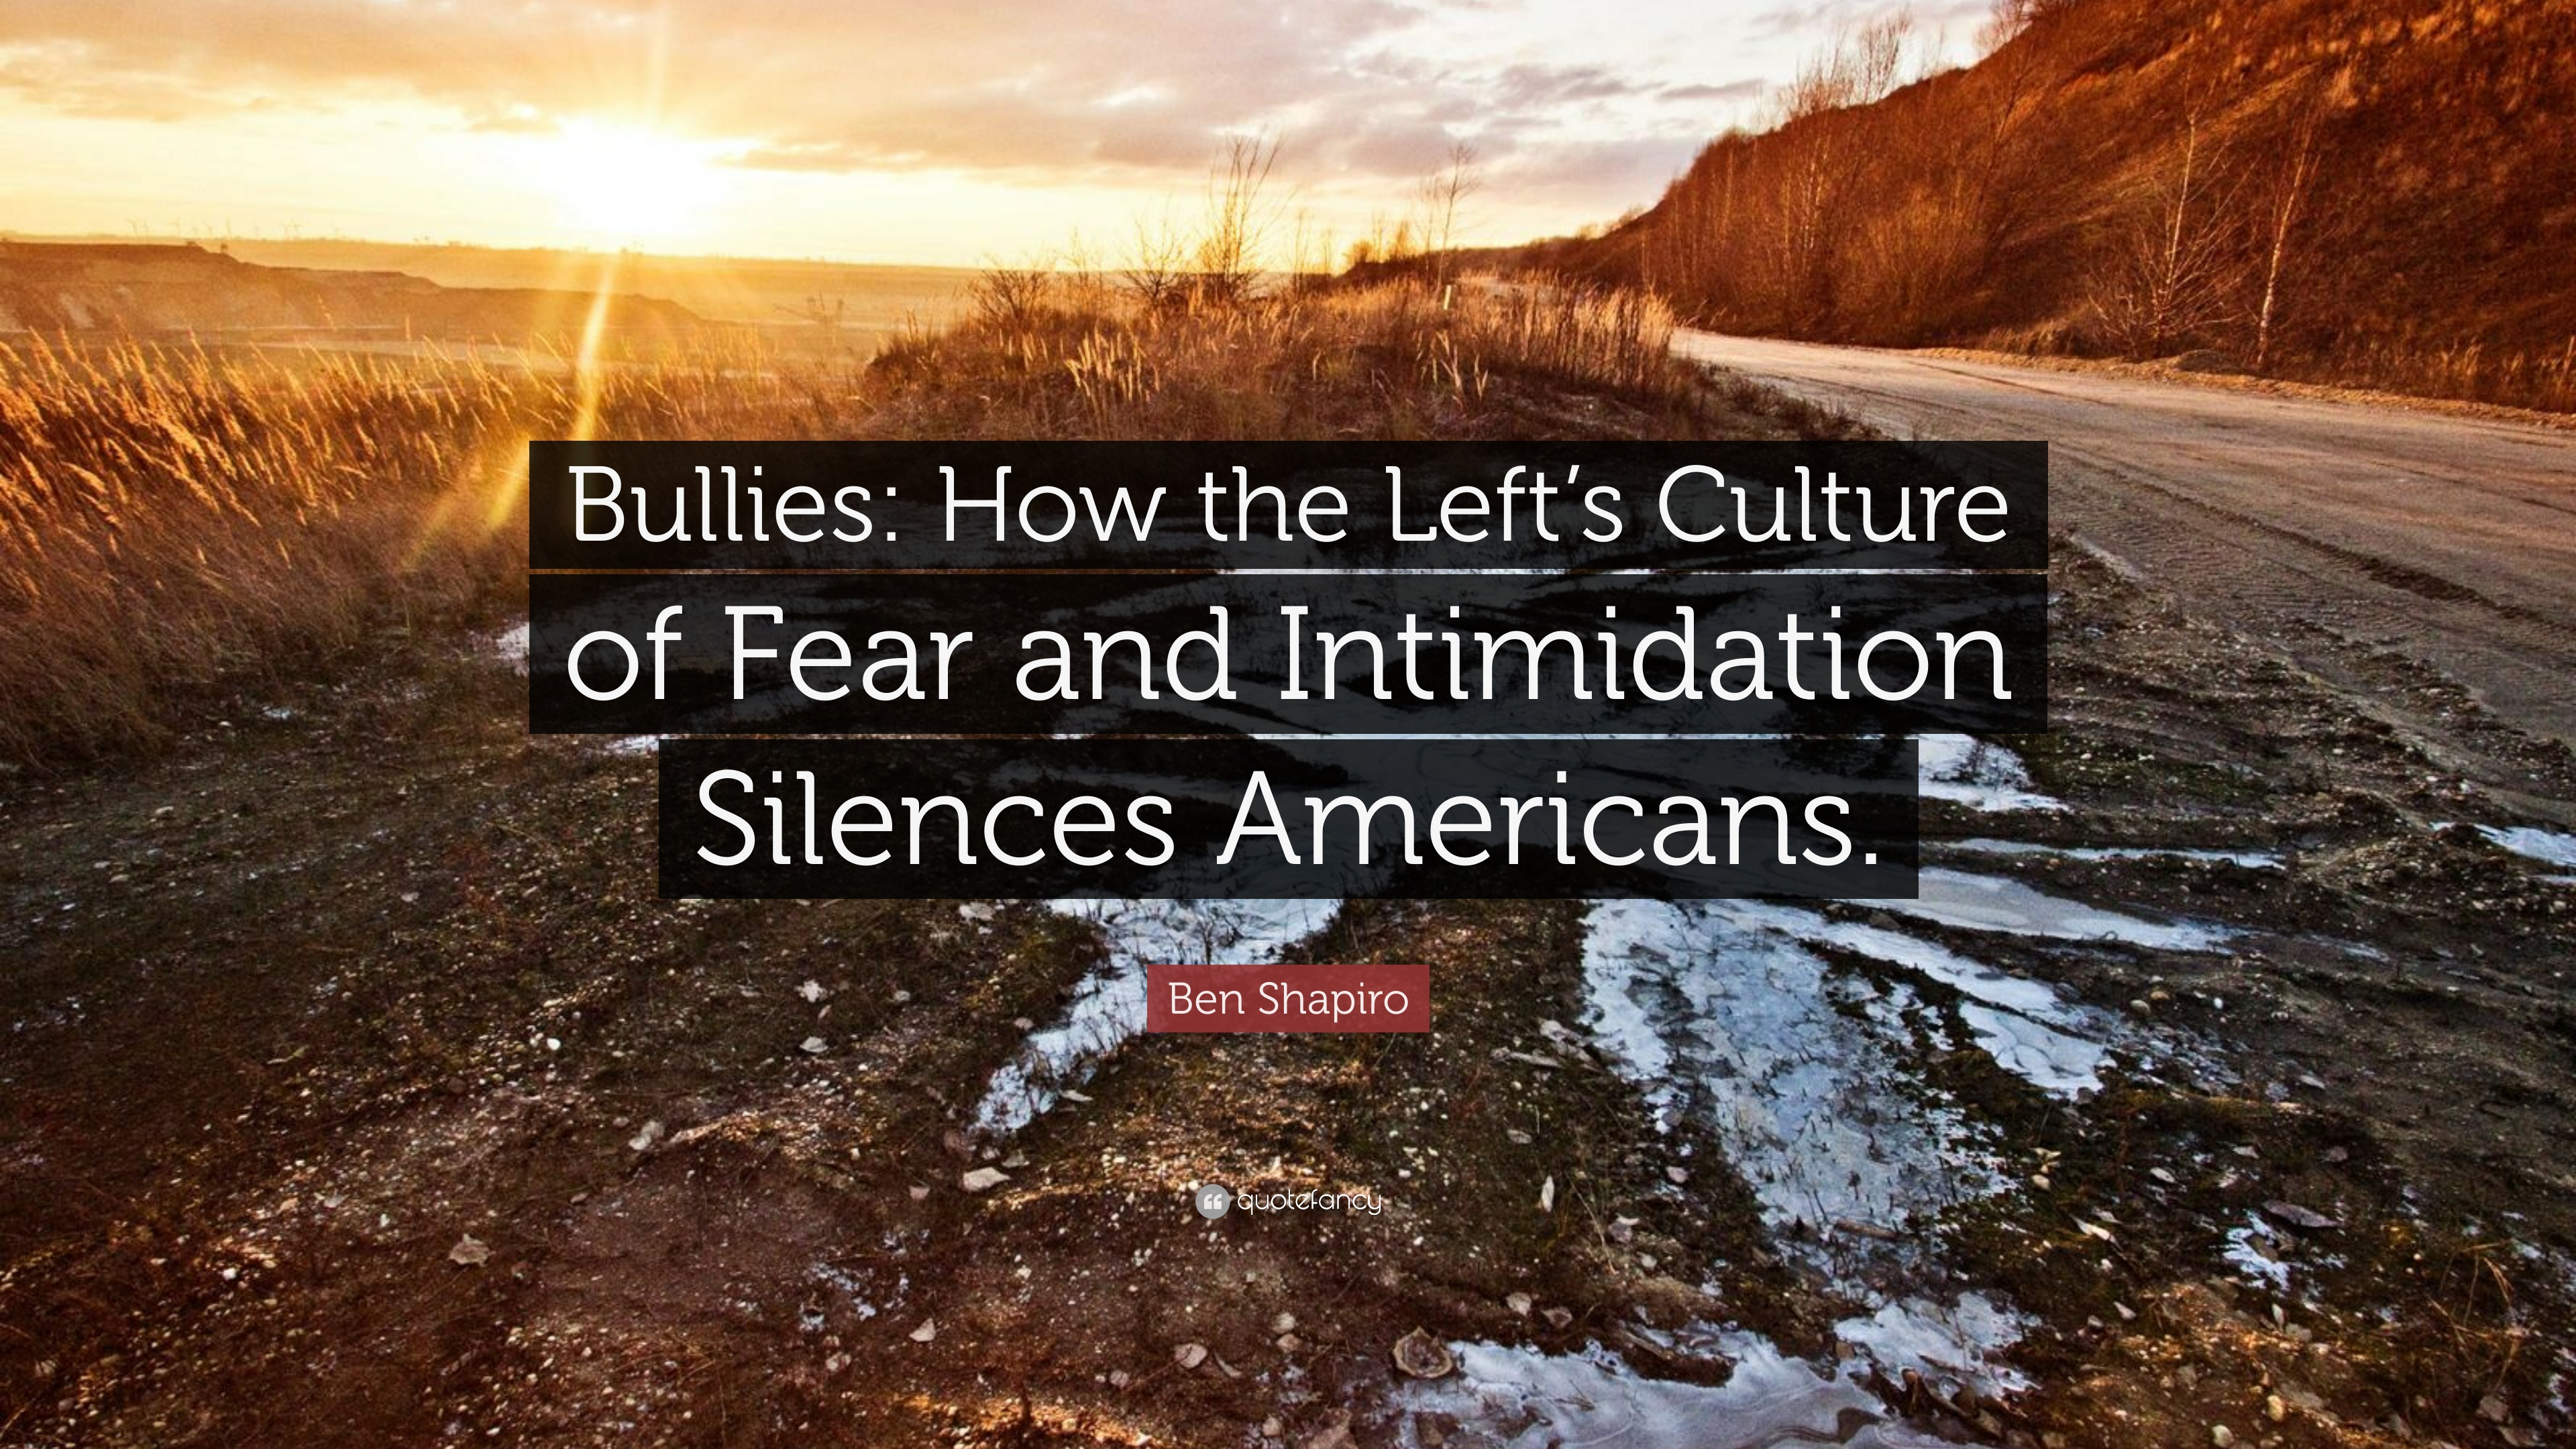 the culture in fear Culture of fear is a term that refers to a perceived prevalence of fear and anxiety in public discourse and relationships, and how this may affect the way people interact with one another as.